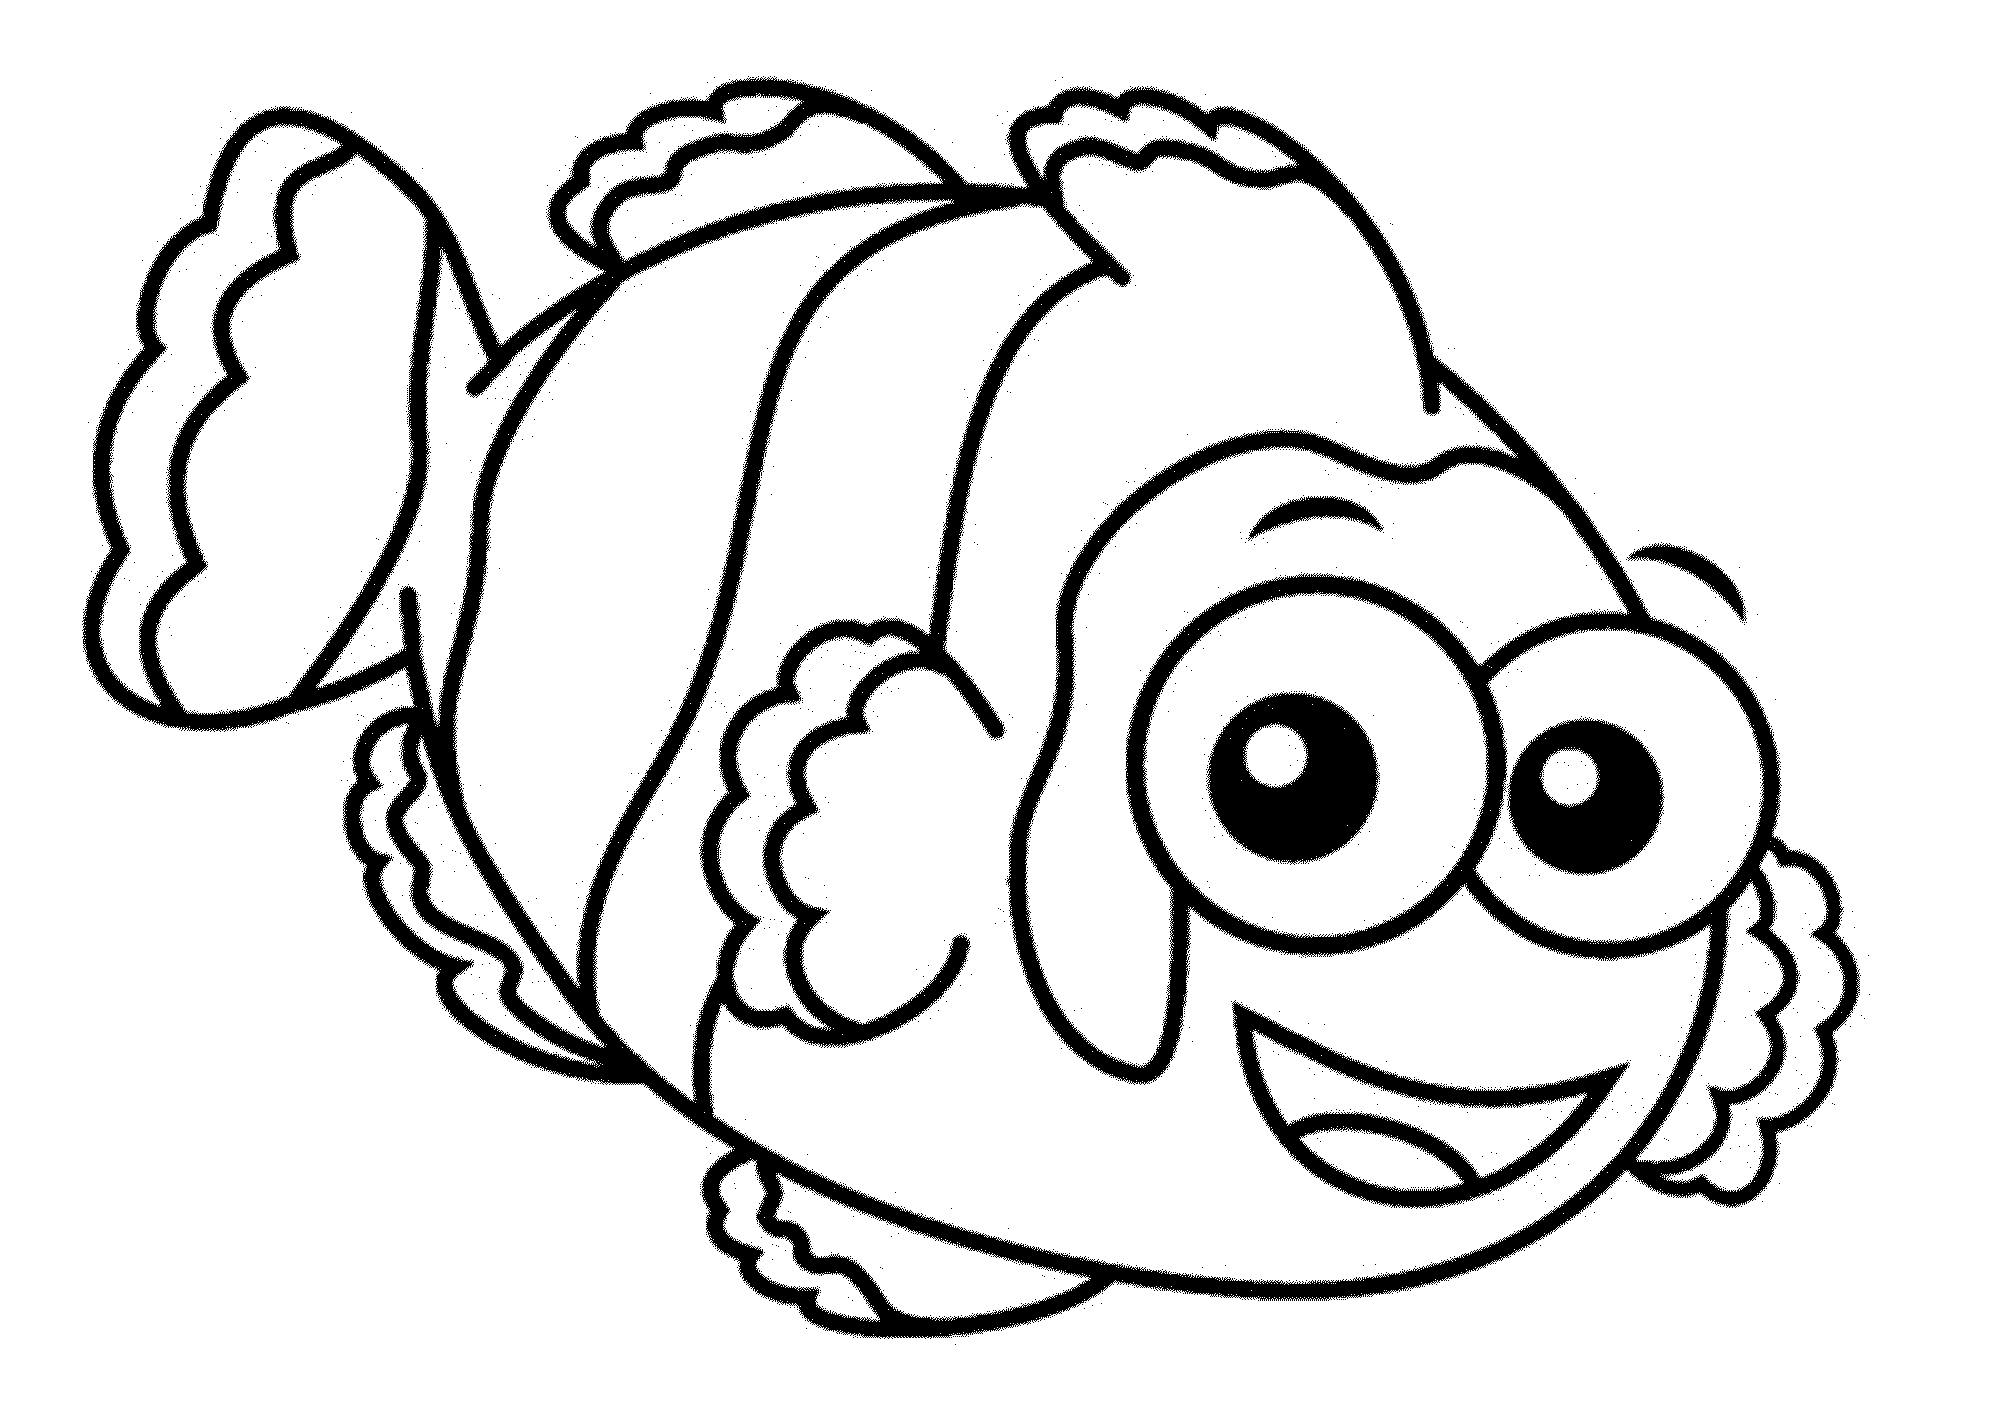 fish picture to color print download cute and educative fish coloring pages color fish picture to